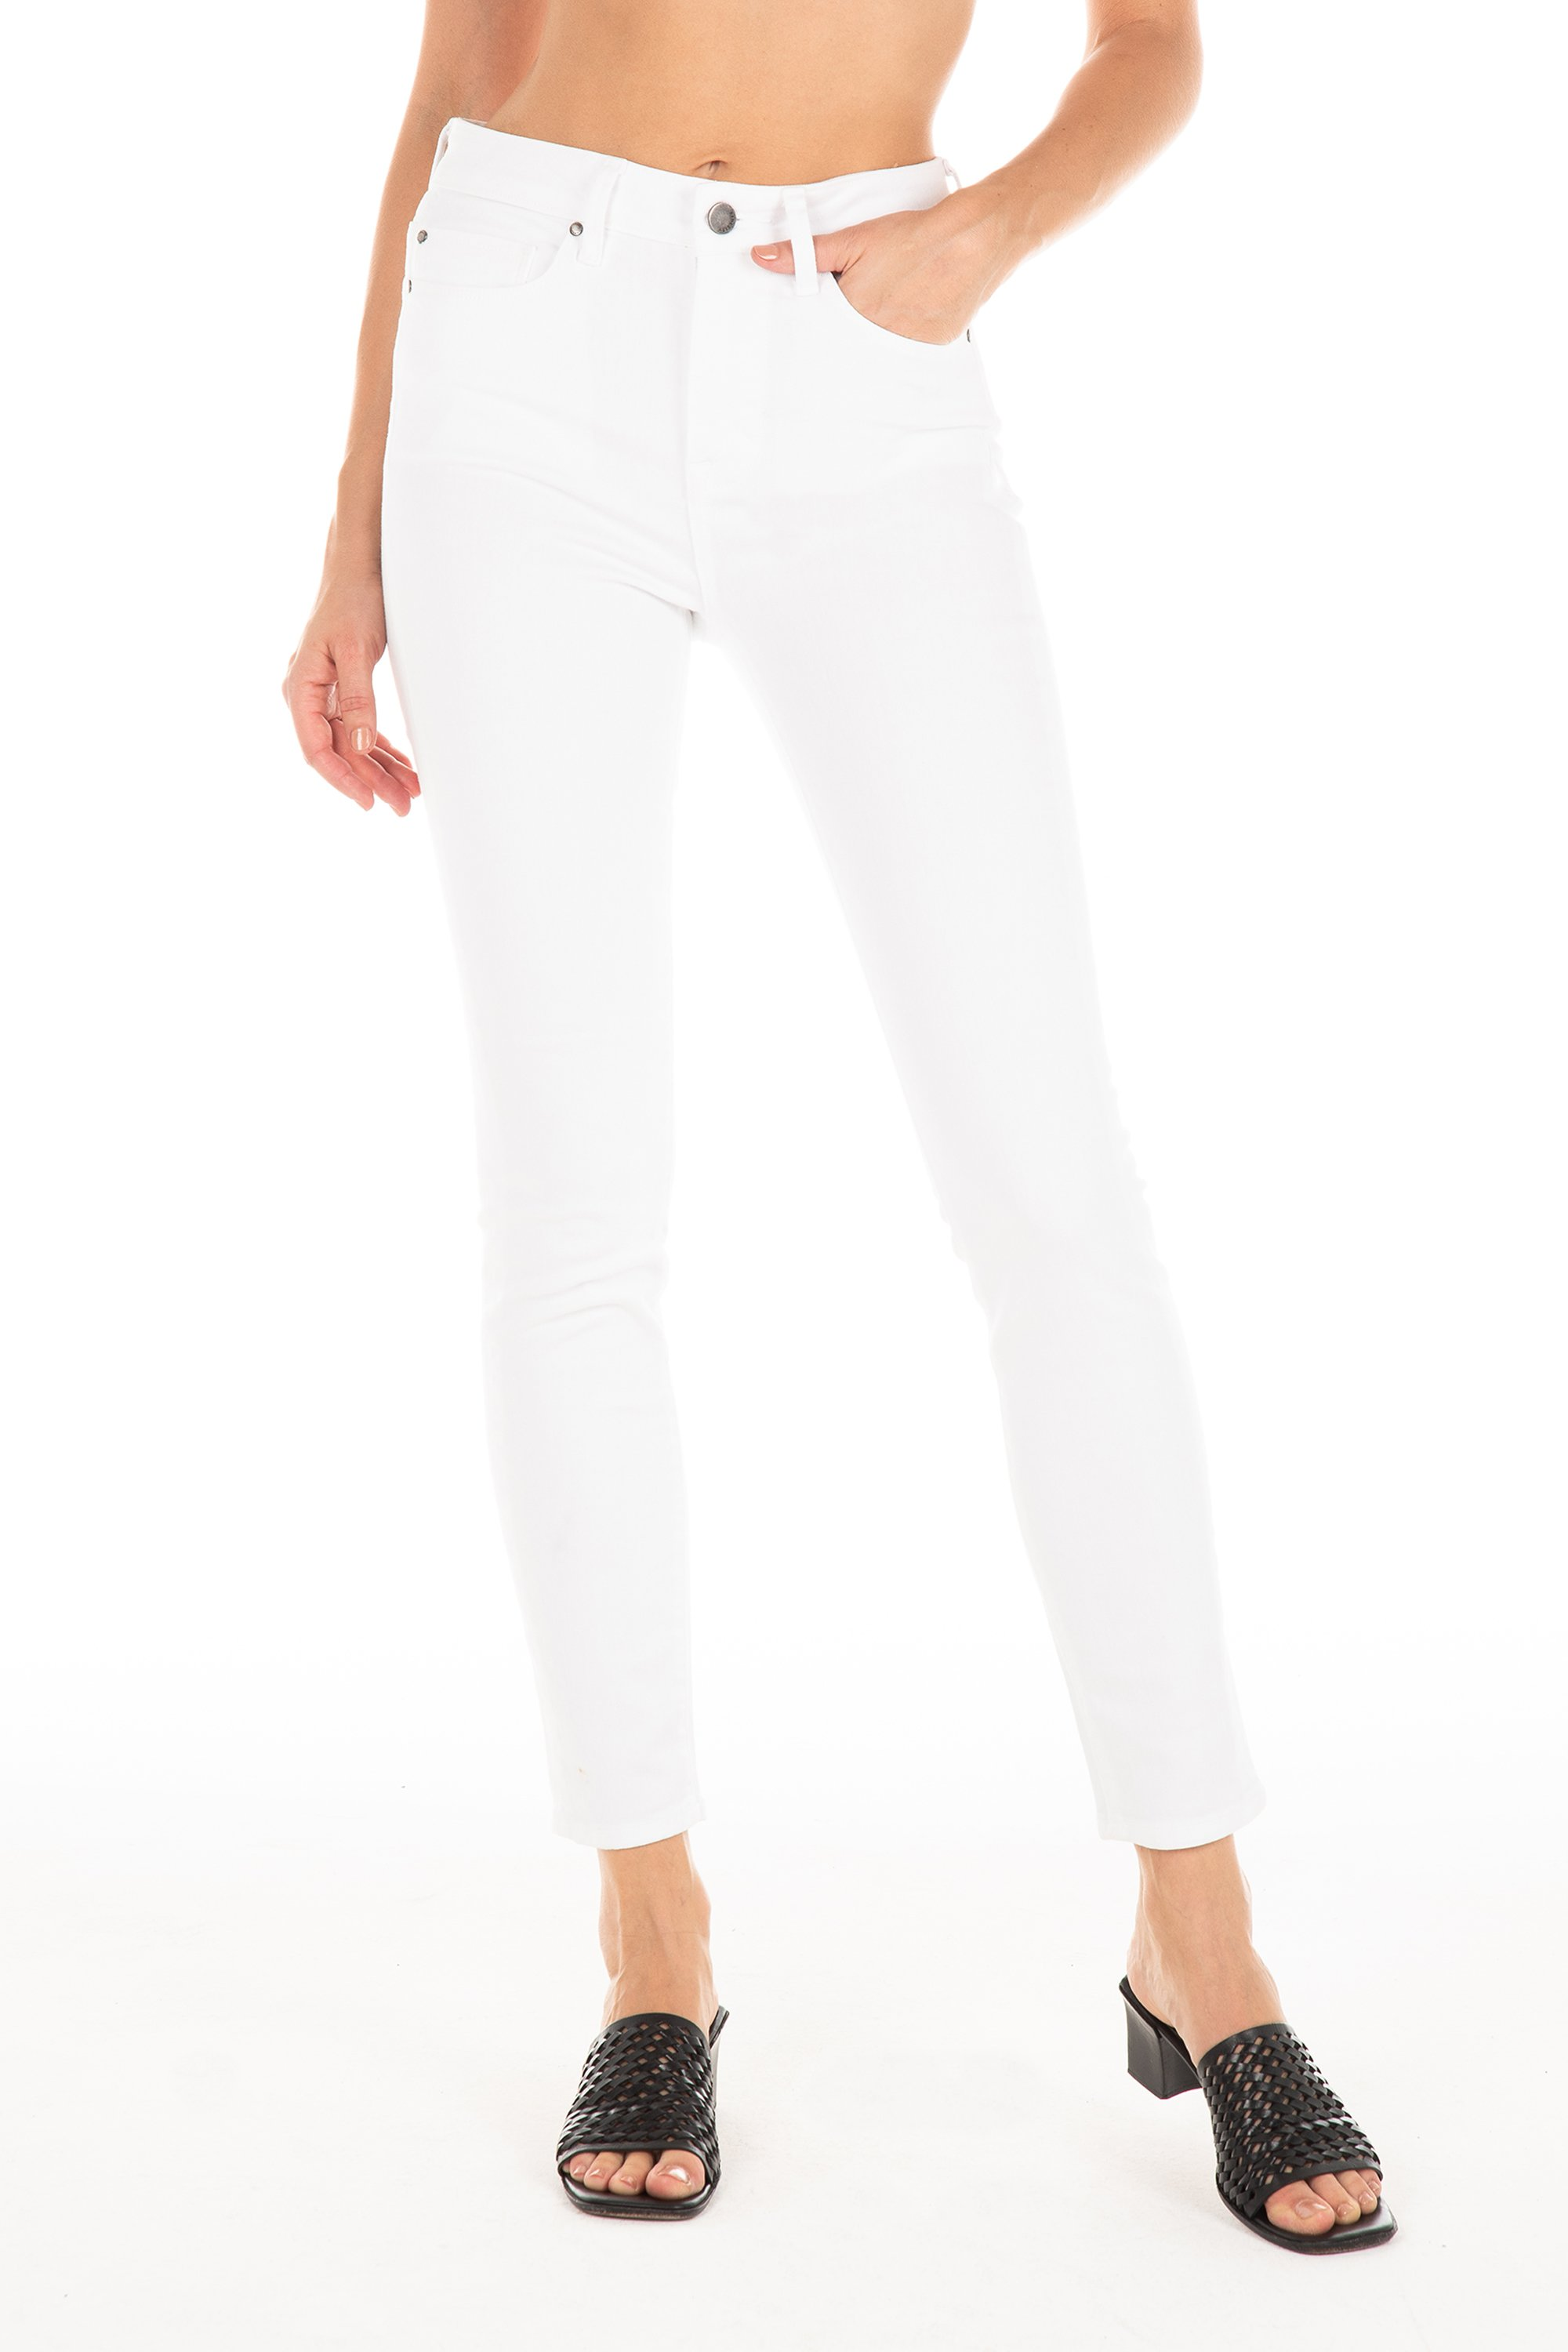 White Jeans - Fidelity high-rise white jeans just in time for the warmer months. Brand new Karma Twill fabric is ultra-soft, ultra-comfy and hugs your figure without bagging out. Handcrafted in Los Angeles.